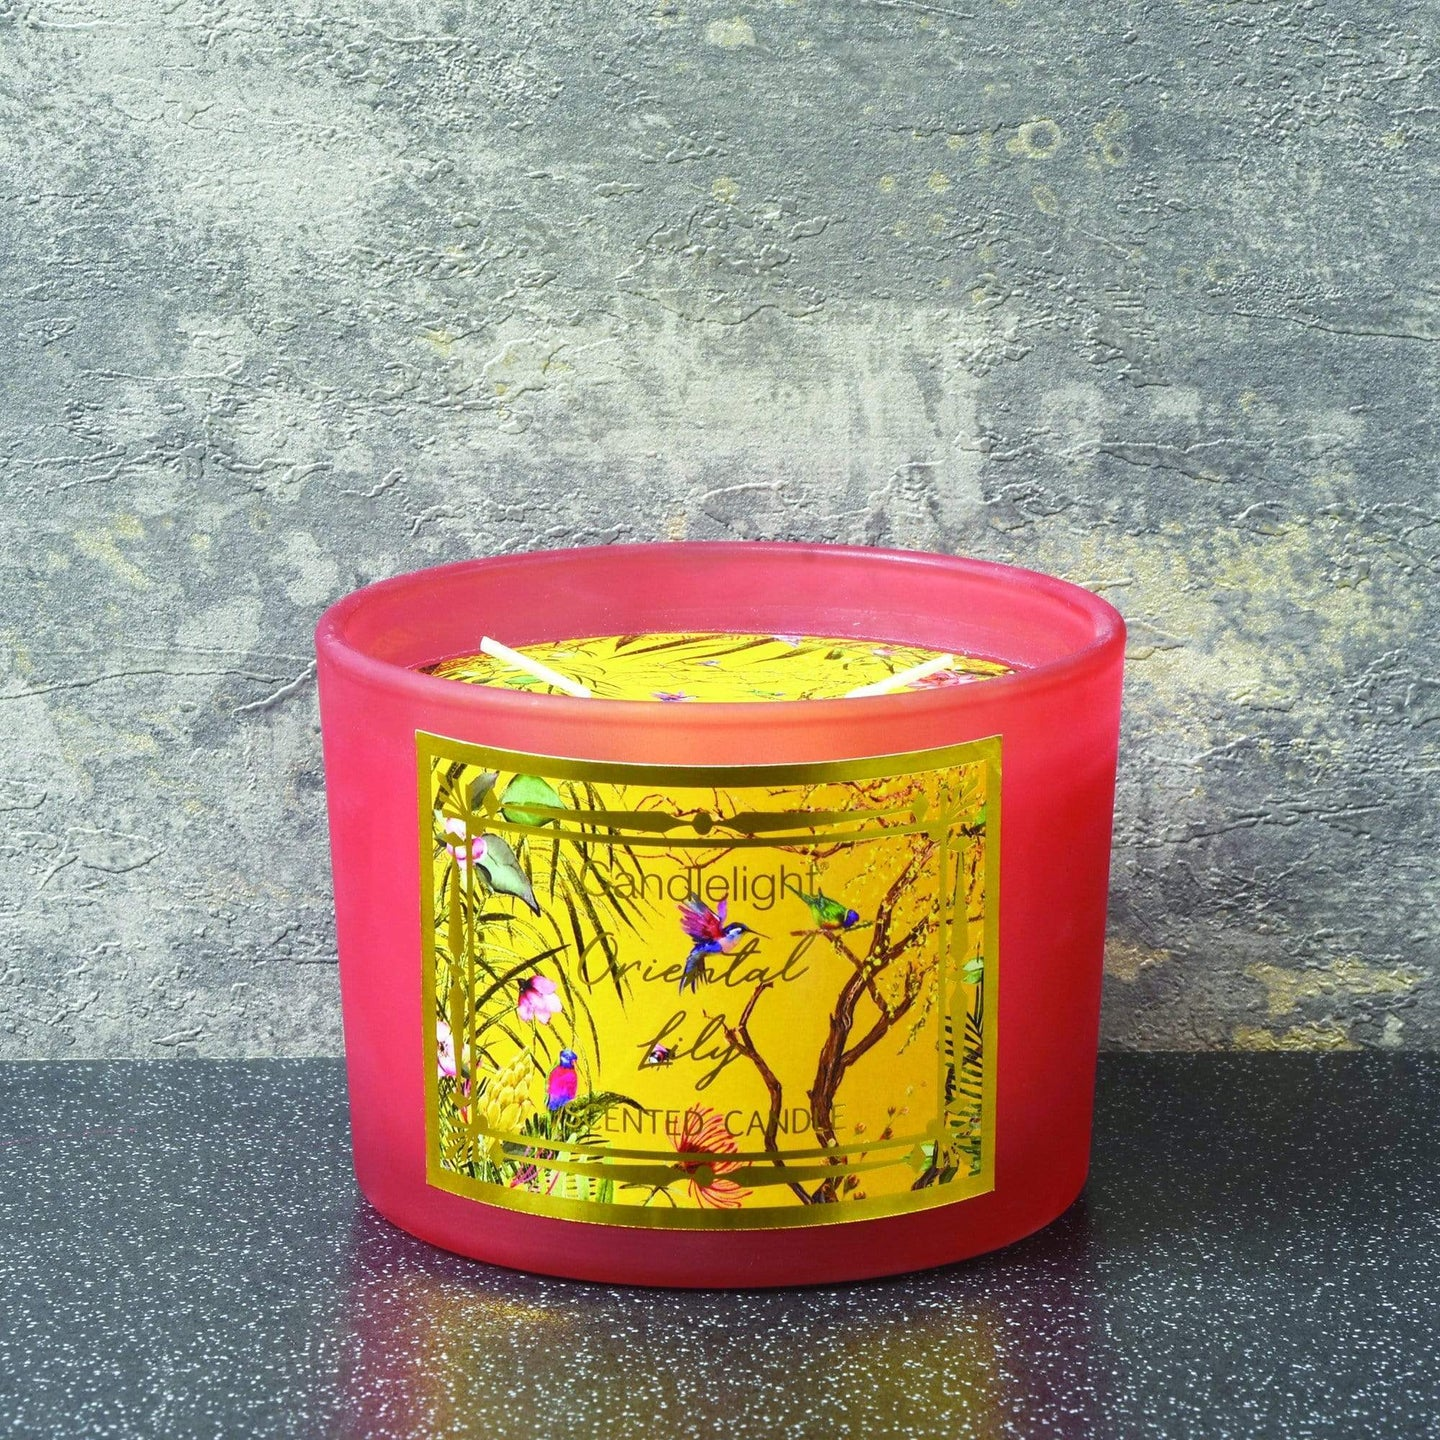 Candlelight Chinoiserie 2 Wick Wax Filled Candle Pot Oriental Lily Scent 380g - Quirky Giftz Ltd